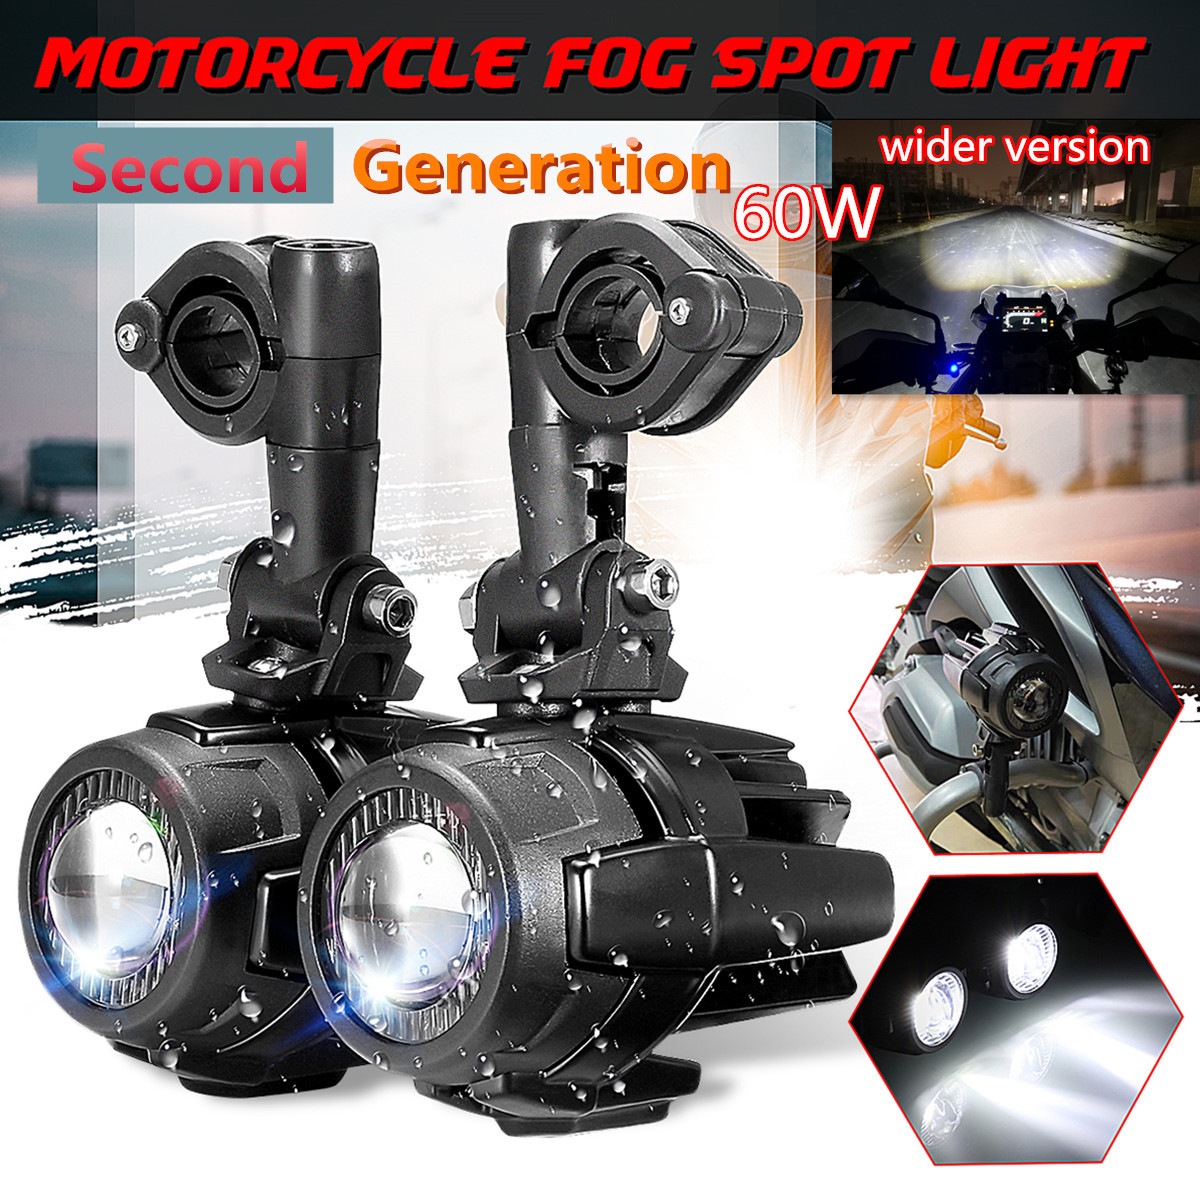 Second Generation Motorcycle LED Auxiliary Car Fog Lights Aluminum Alloy Safety Driving Spot Lamp For BMW R1200GS ADV F800G